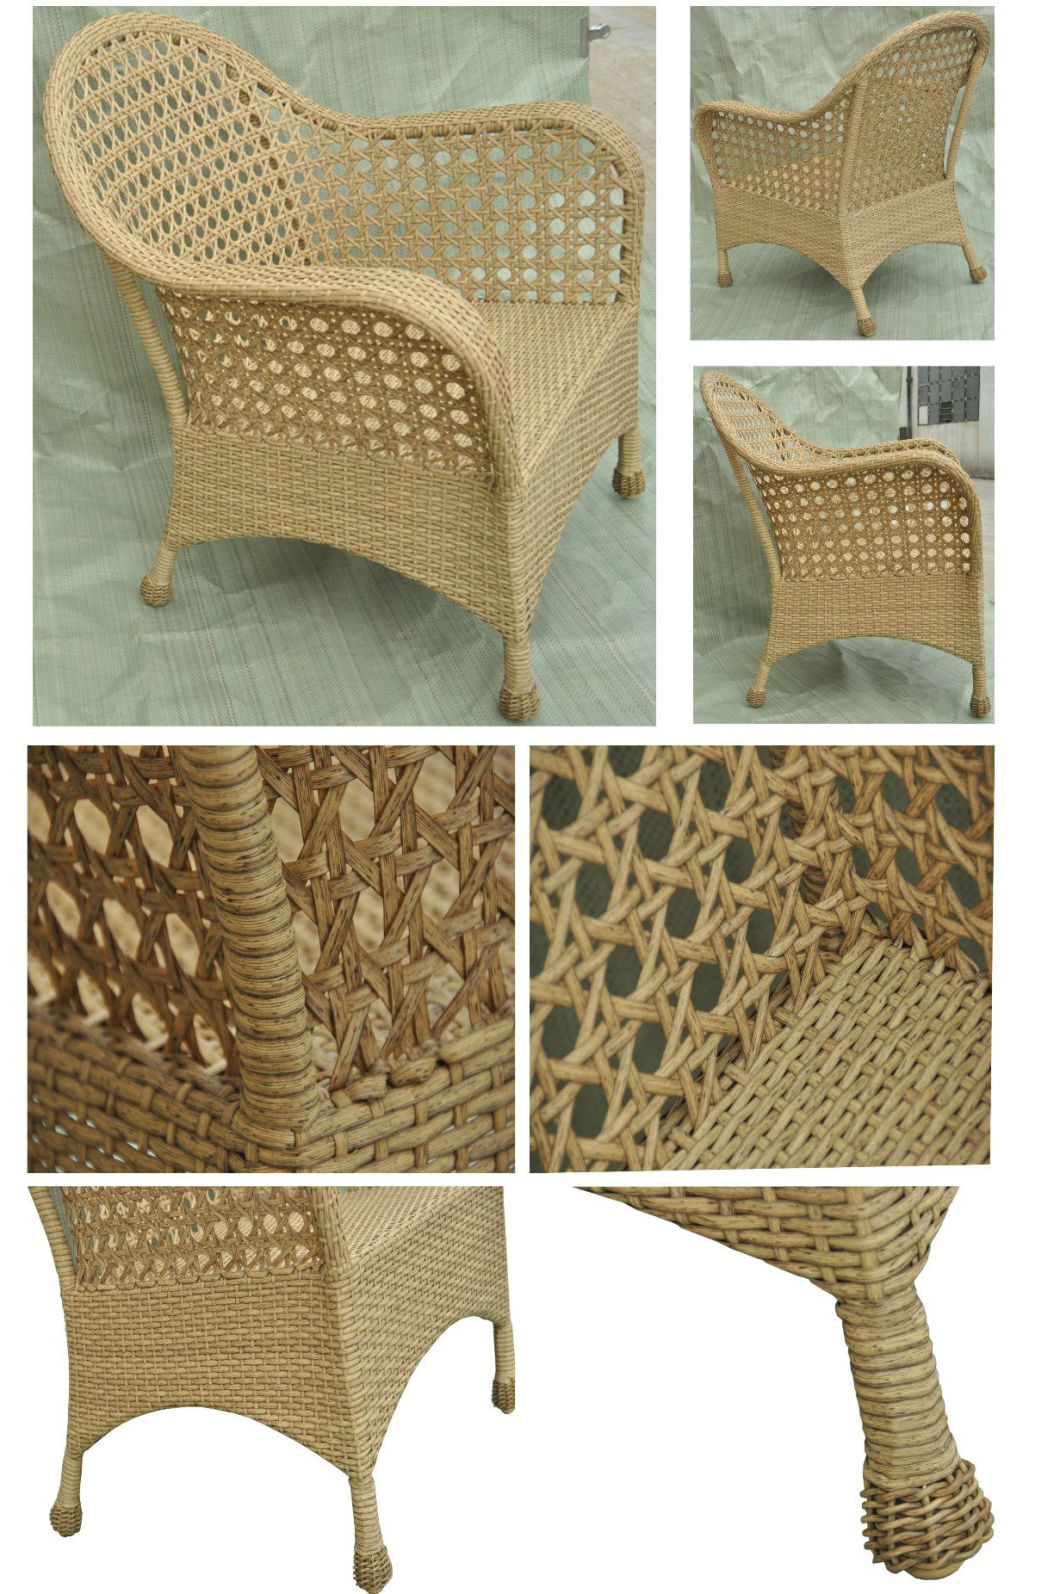 Leisure Outdoor Furniture Rattan/Wicker Chair Garden Furniture Patio Chair